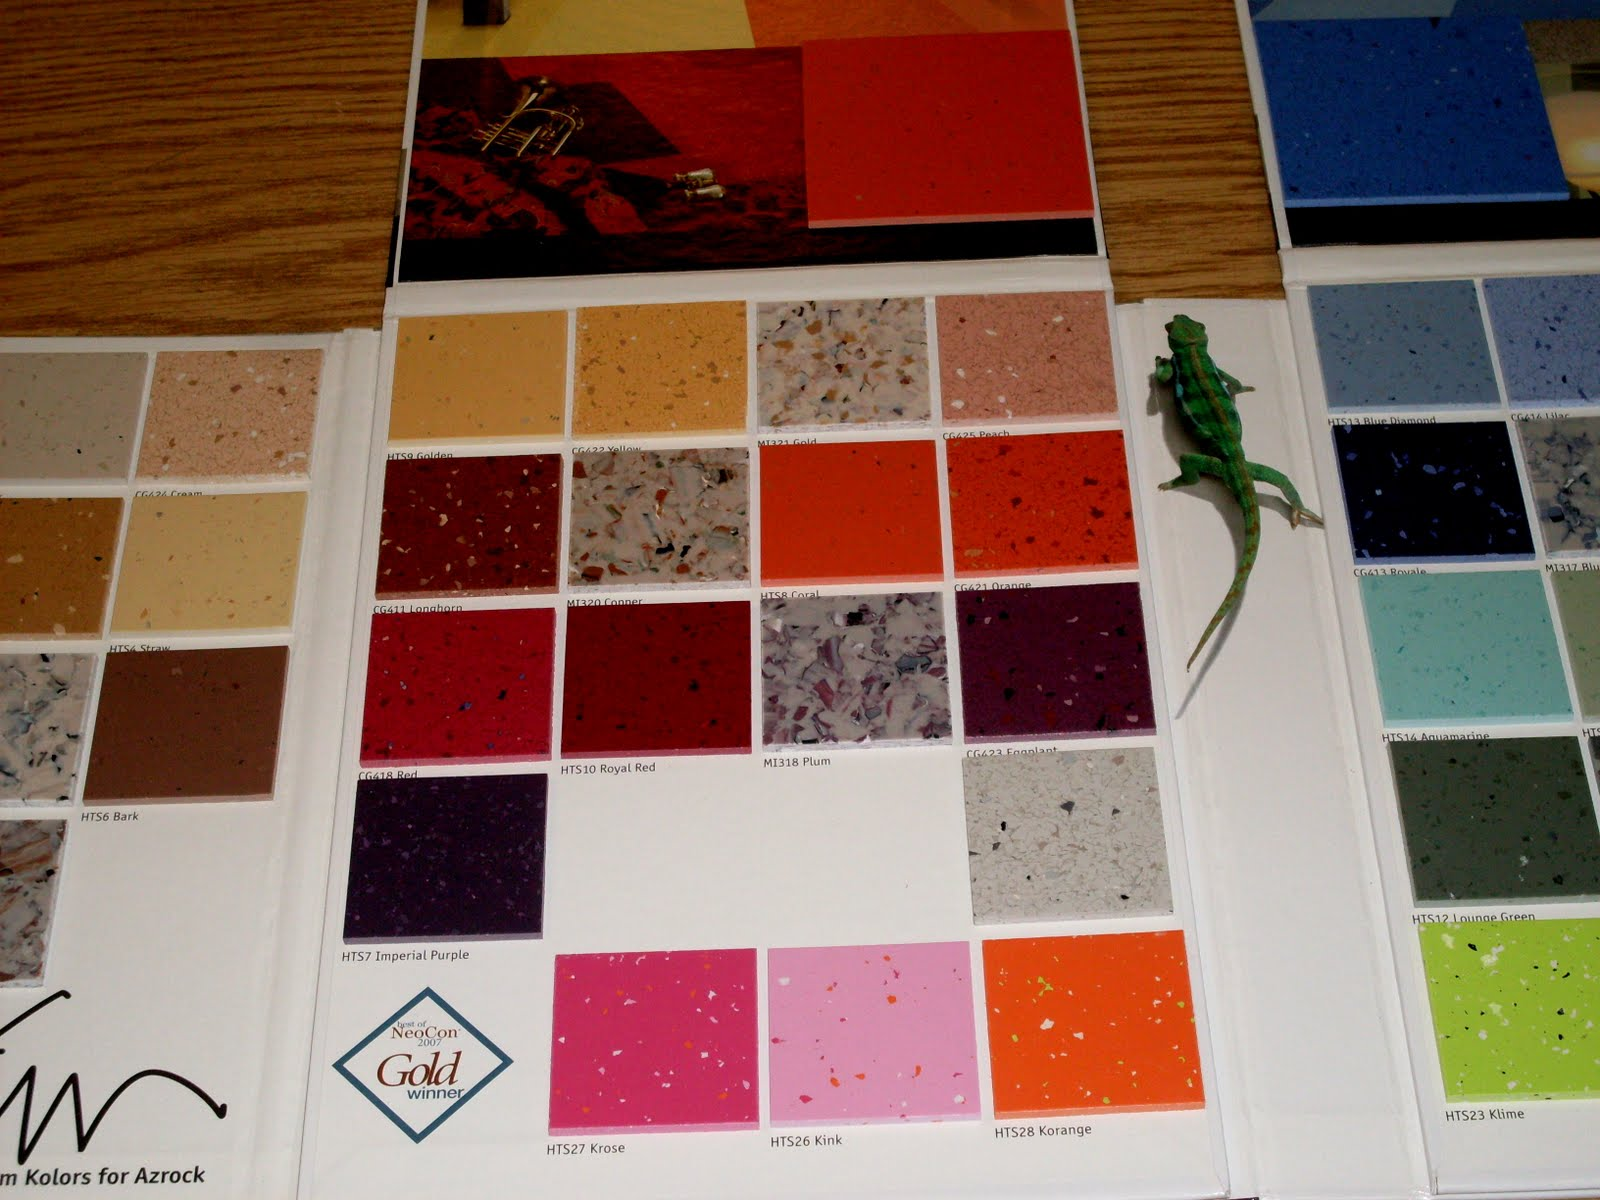 Creative reuse spotlight product sample boards the scrap exchange with these carpet sample boards use a utility knife to remove the top of the board and handle or leave them intact and incorporate those features into baanklon Gallery